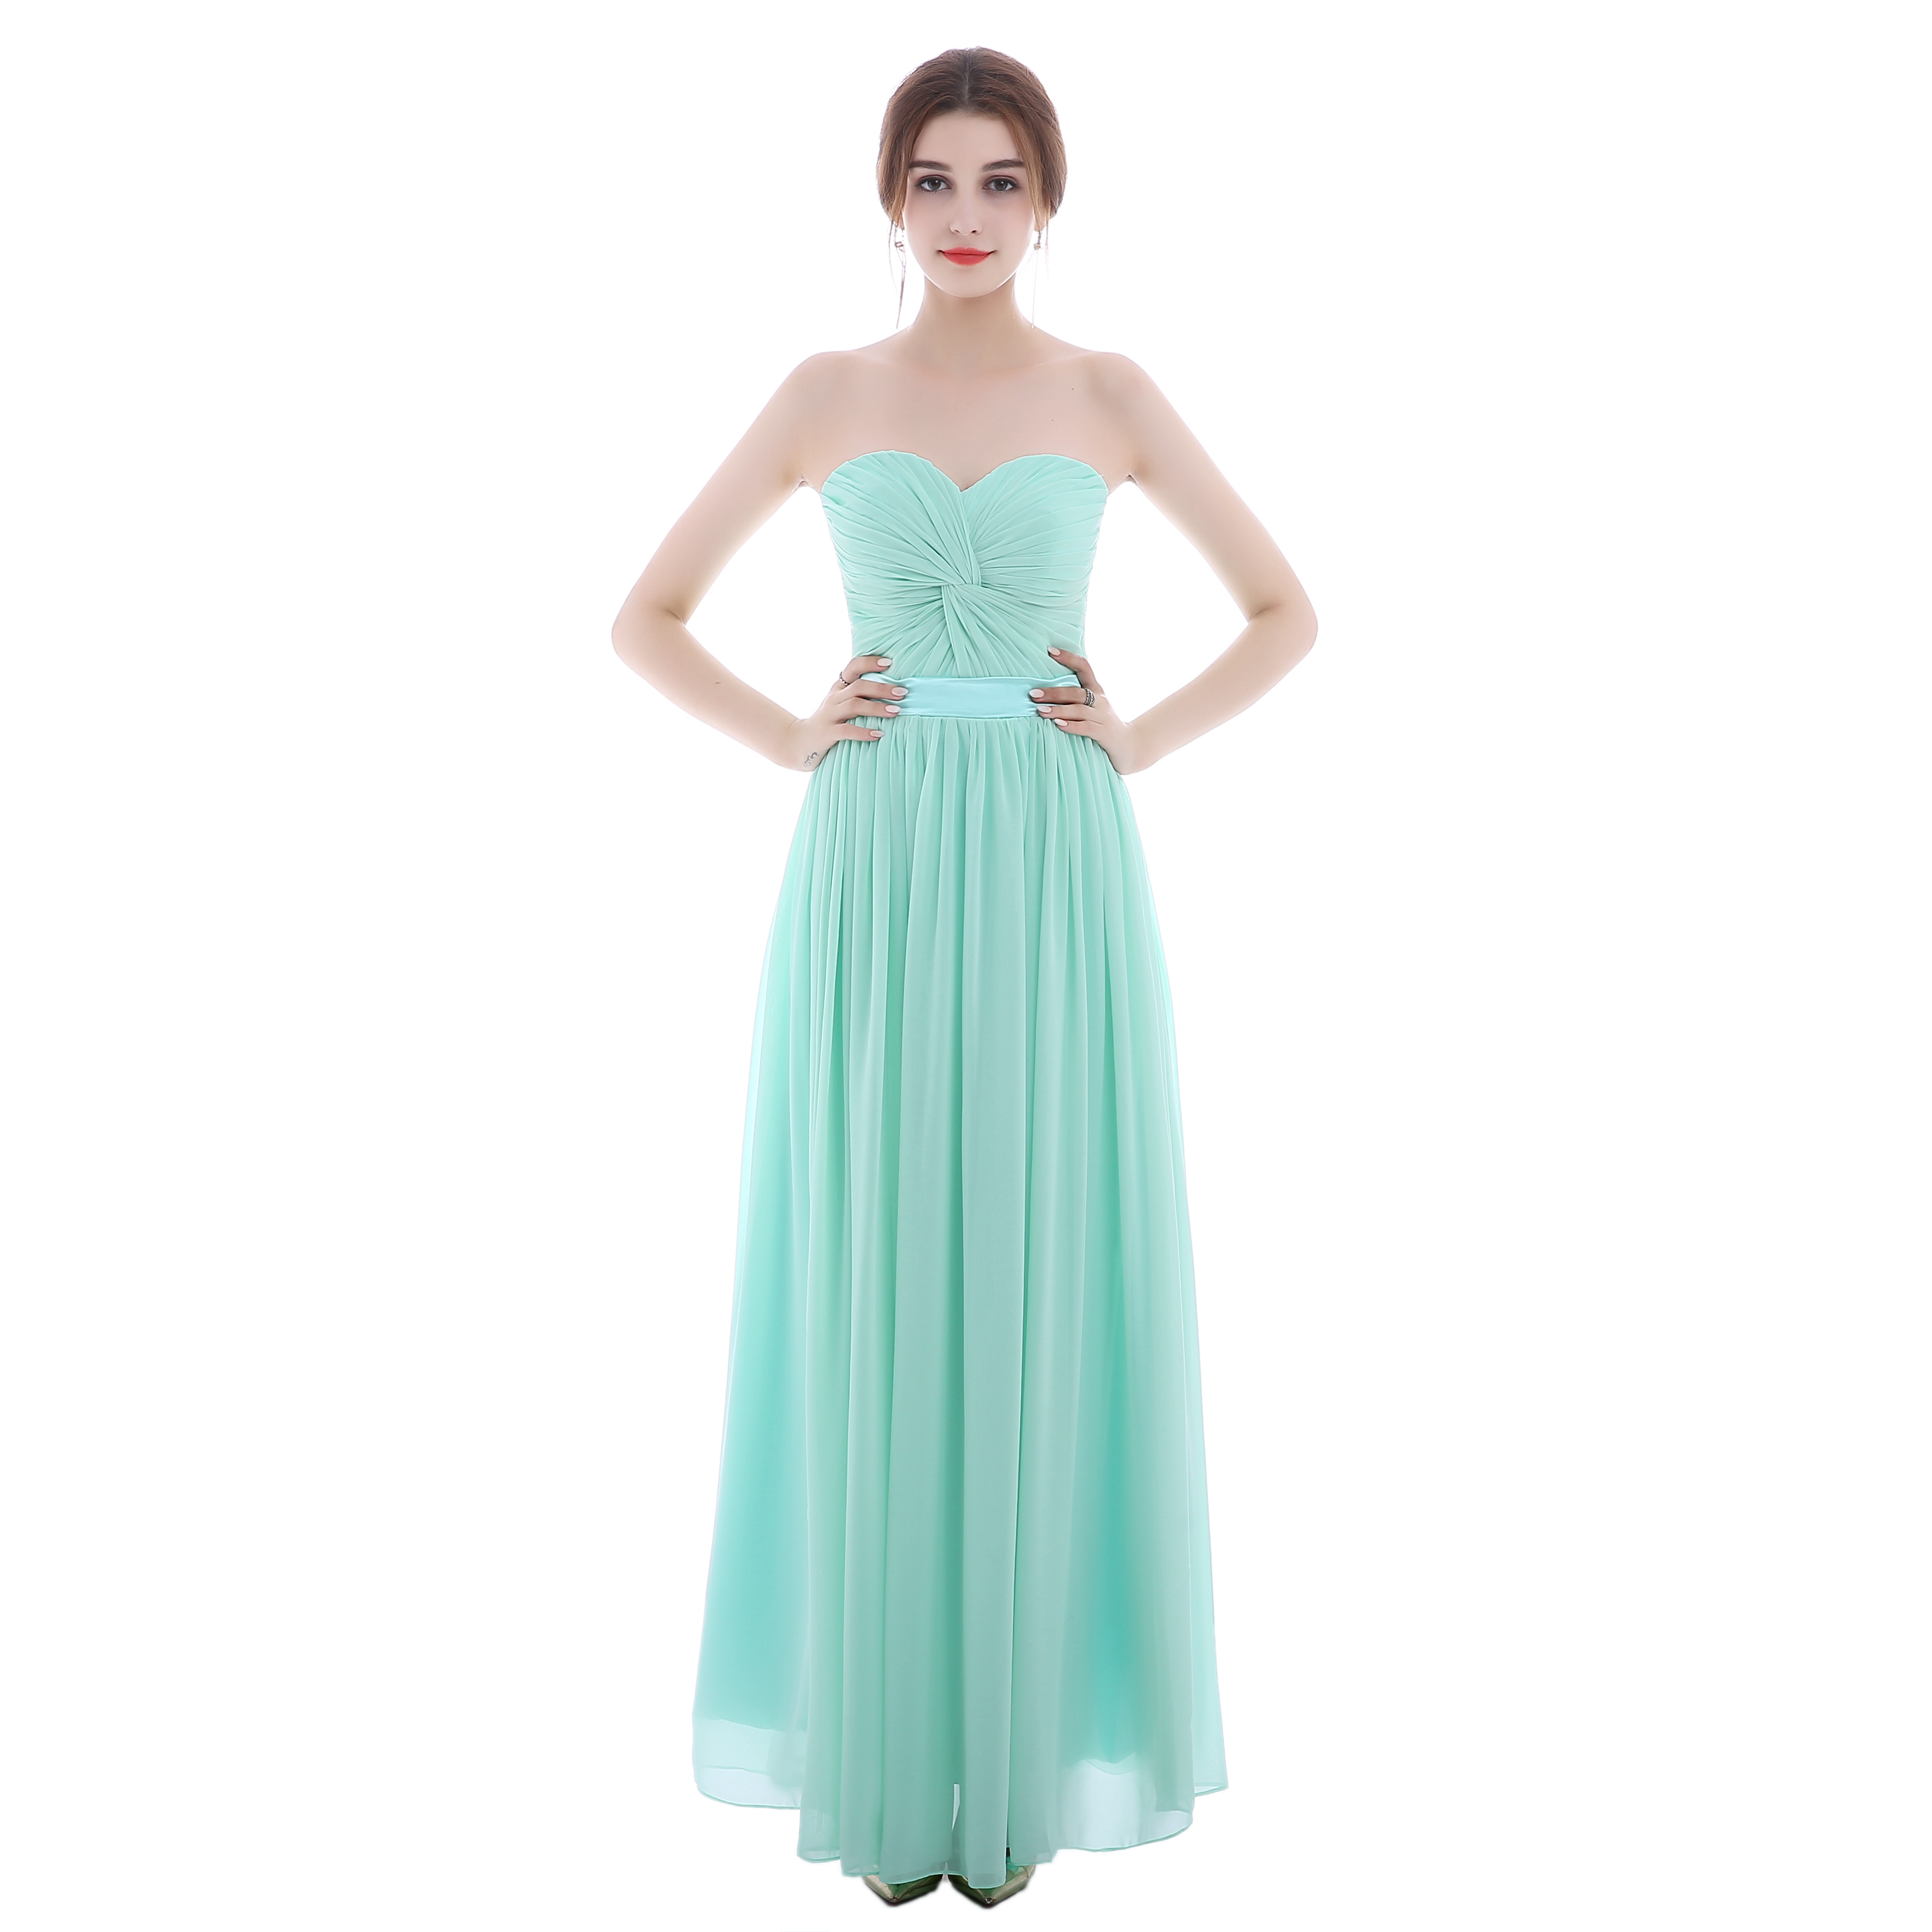 Buy Ball Gown Wedding Dresses, Wholesale Ball Gown Wedding Dresses ...